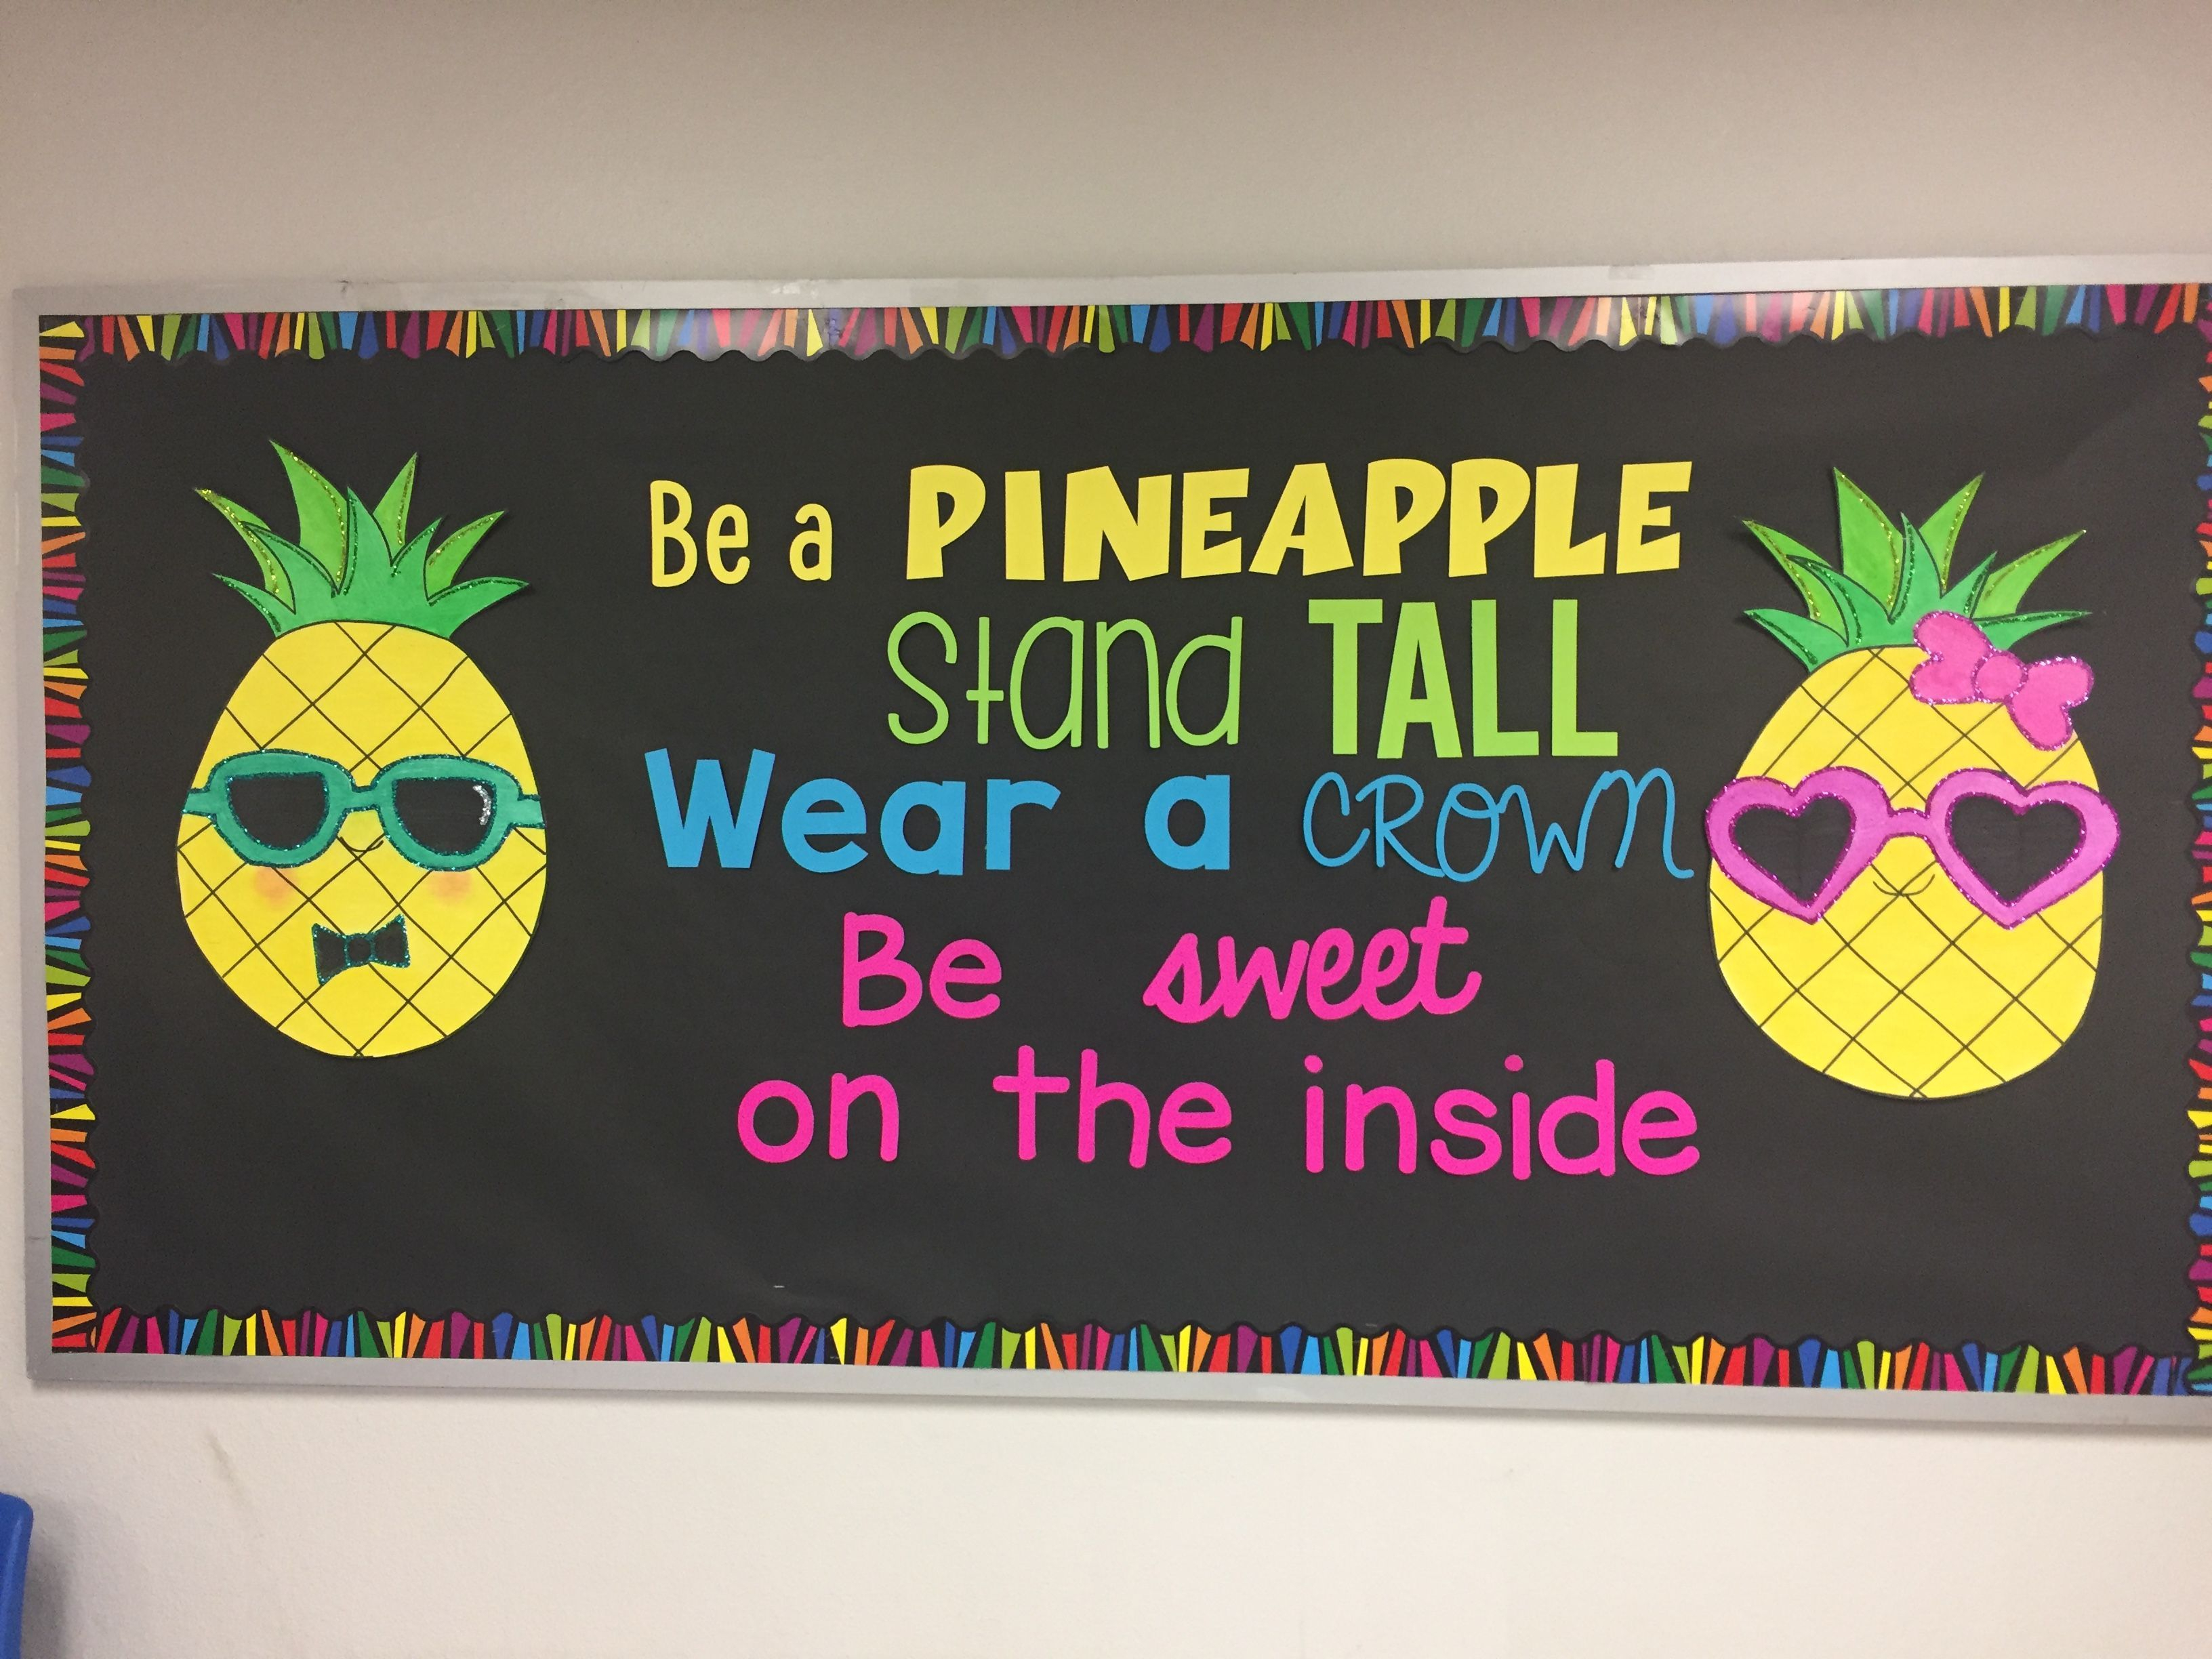 10 Lovely Bulletin Board Ideas For Elementary School image result for bulletin board ideas elementary school bulletin 2020